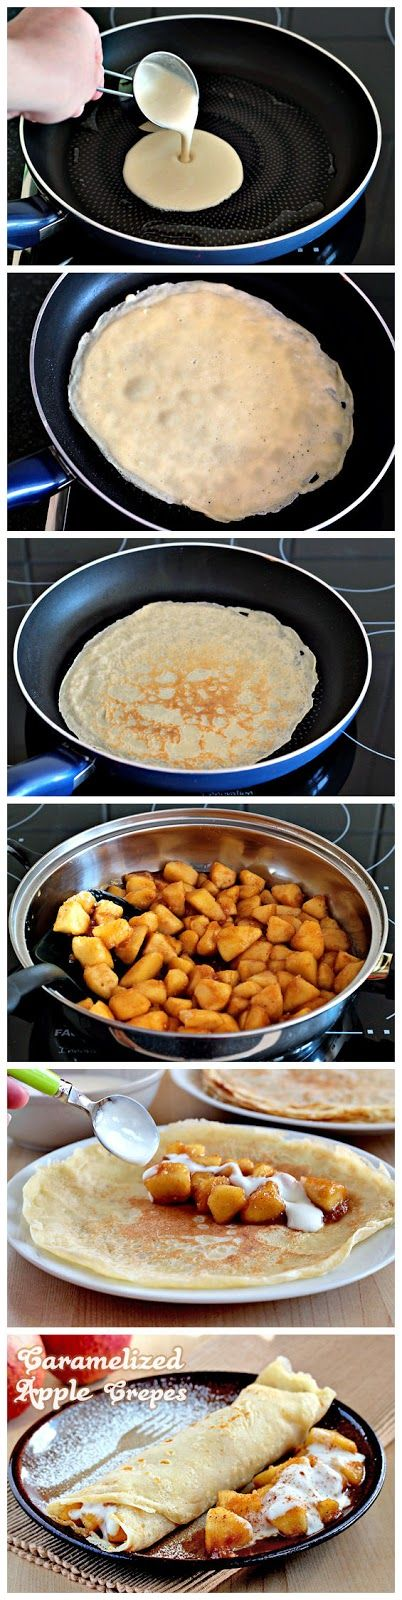 Caramelized Apple Crepes – yum.  Could also make caramelized banana crepes.  All can be made in advance.